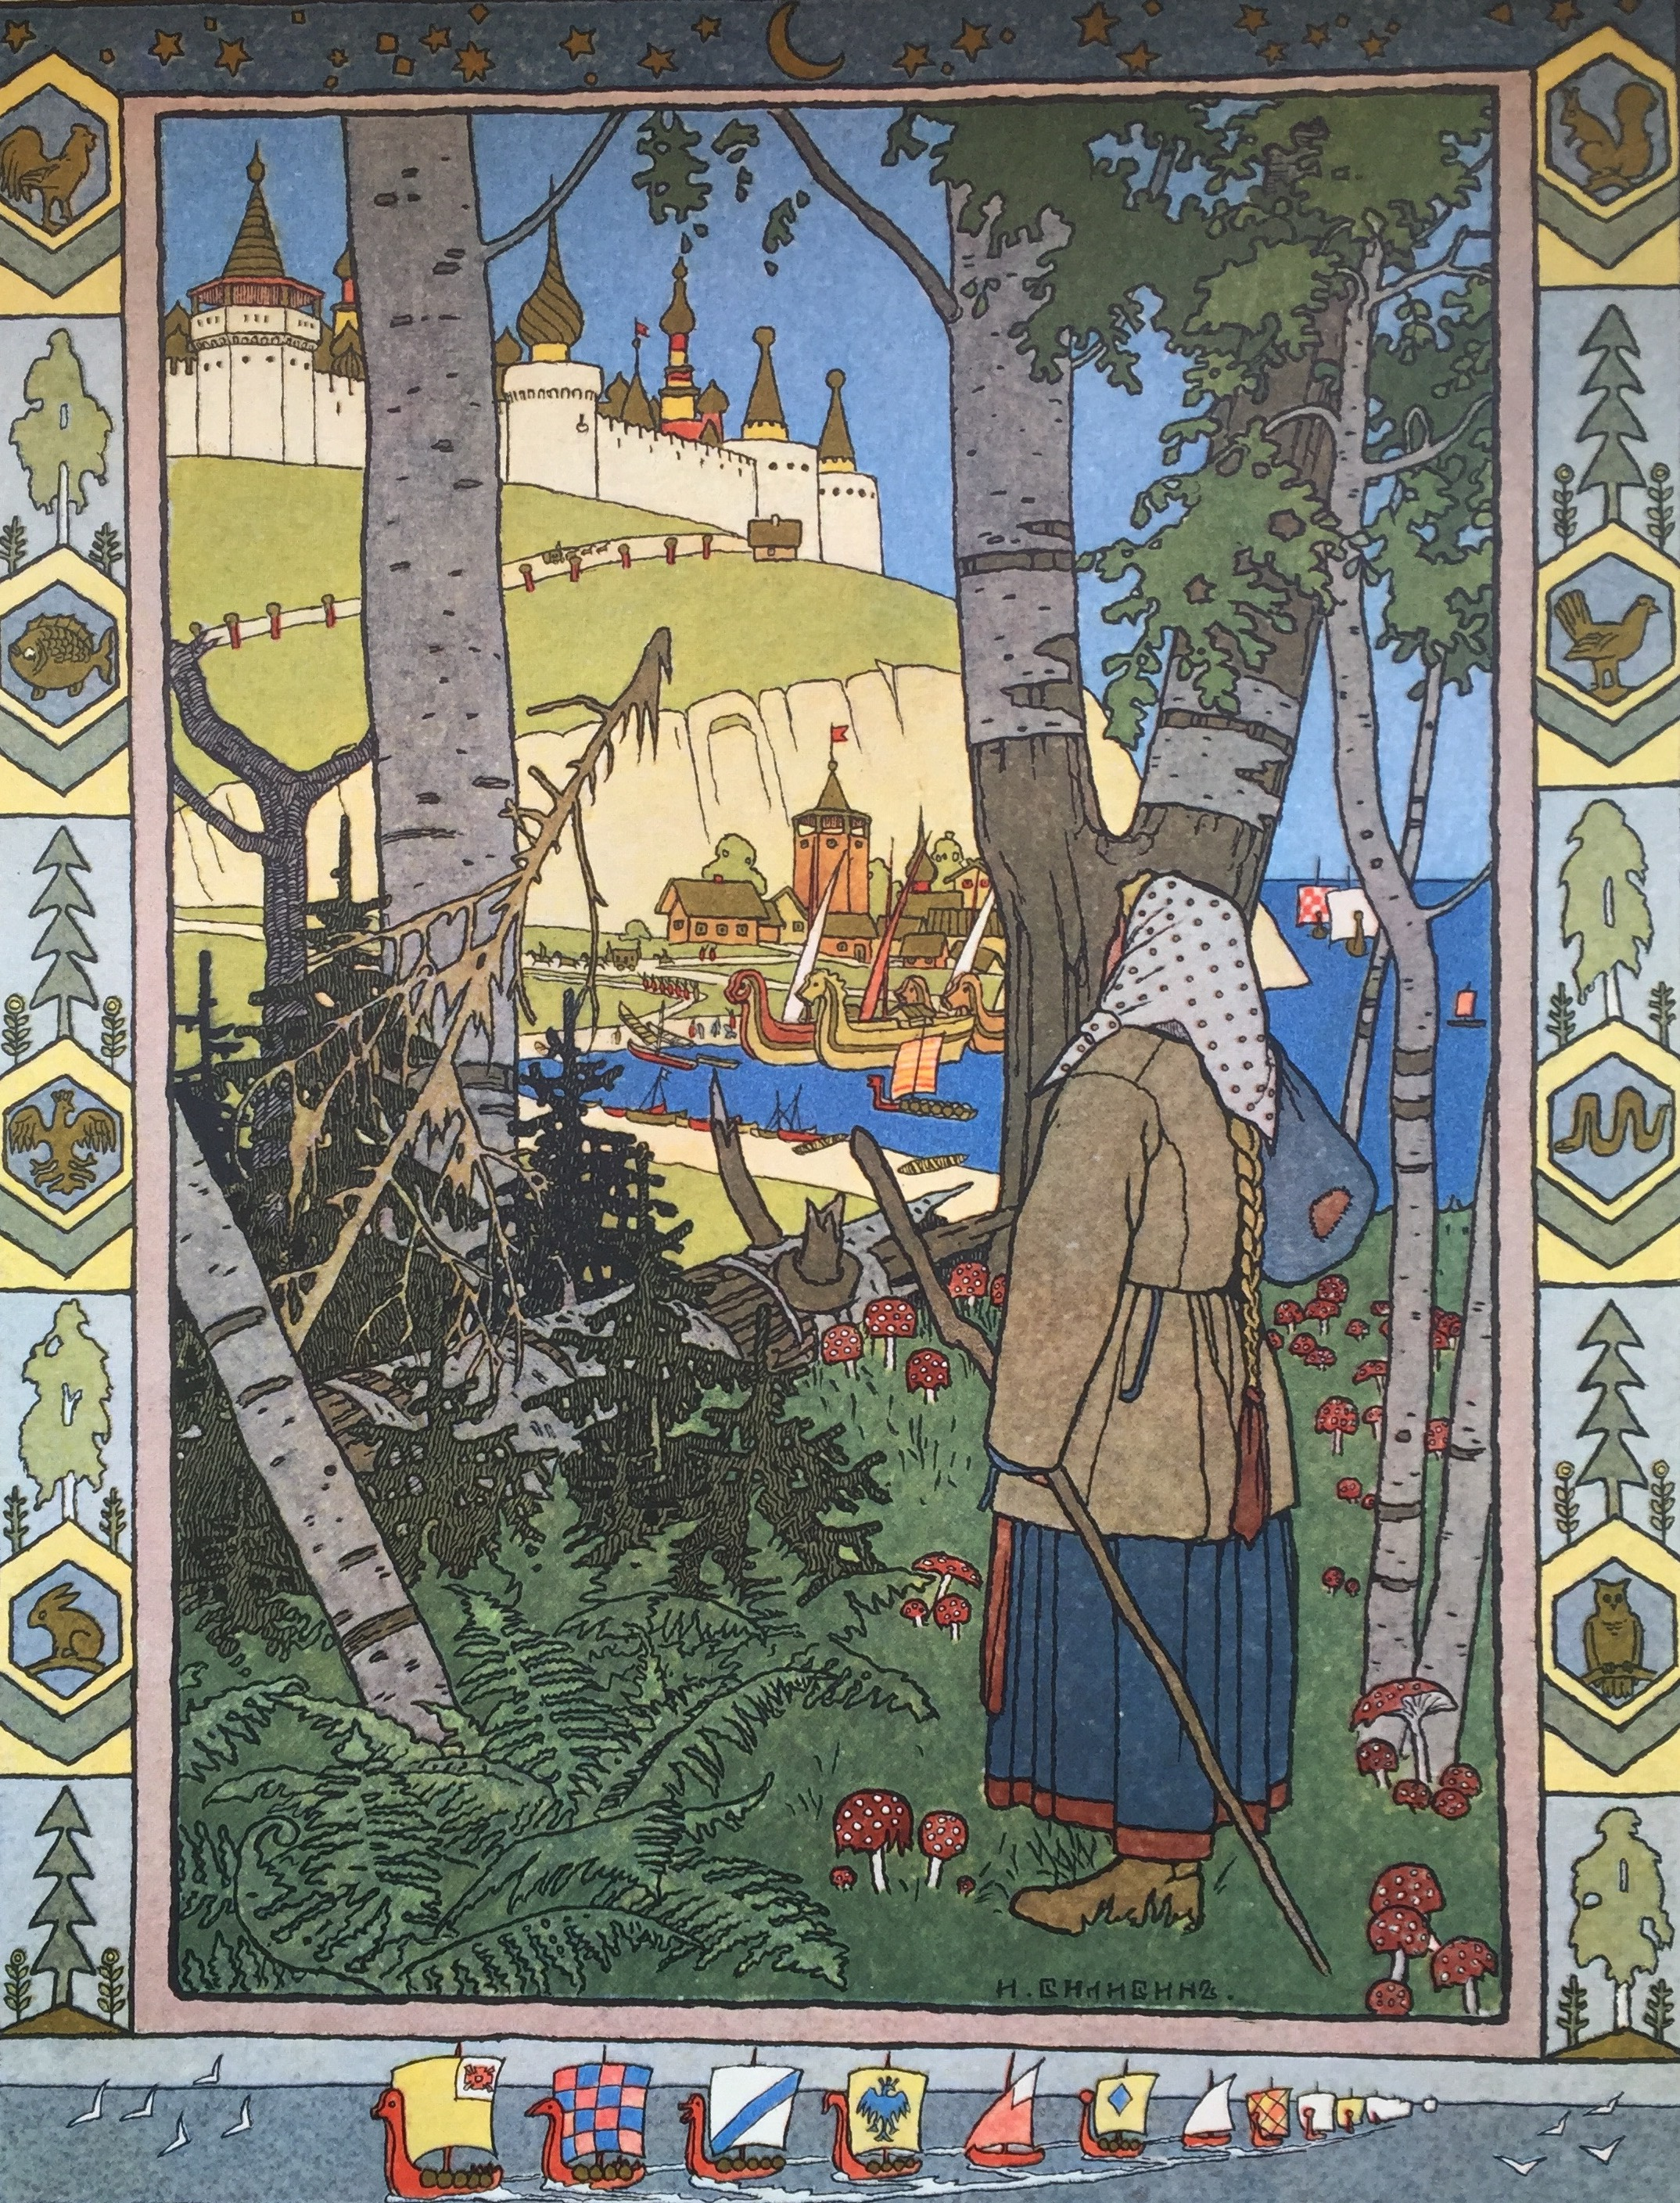 The bride of Finist the Falcon has almost completed her journey. From The Feather of Finist the Falcon, a Russian Fairy Tale by Ivan Bilibin